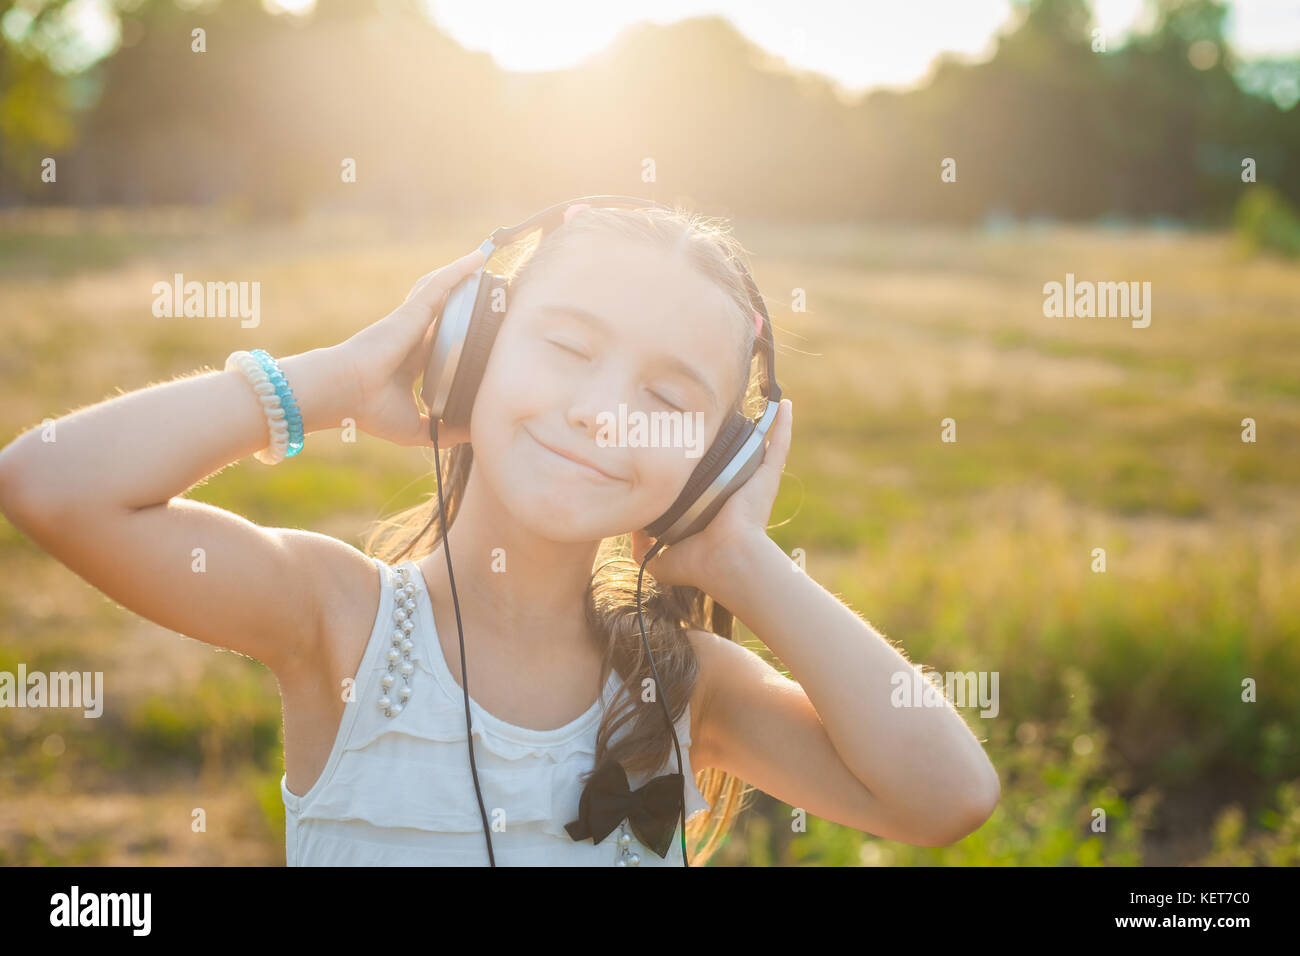 Funny Girl listening music with headphones Photo Stock